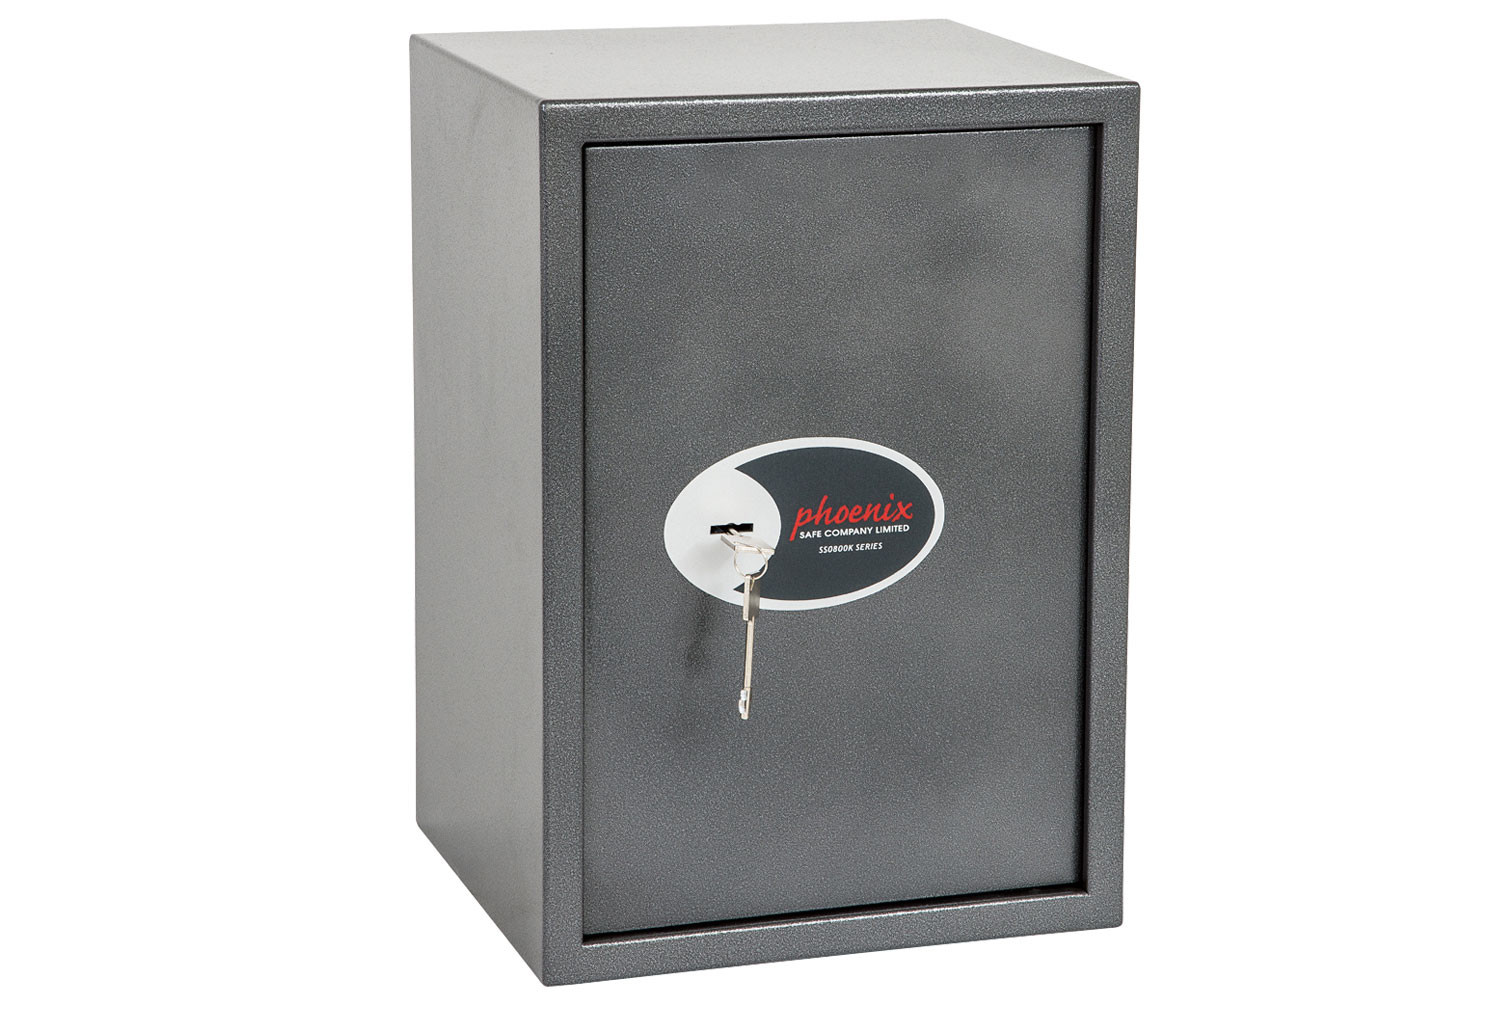 Phoenix Vela Ss0804K Home Office Safe With Key Lock (51Ltrs)